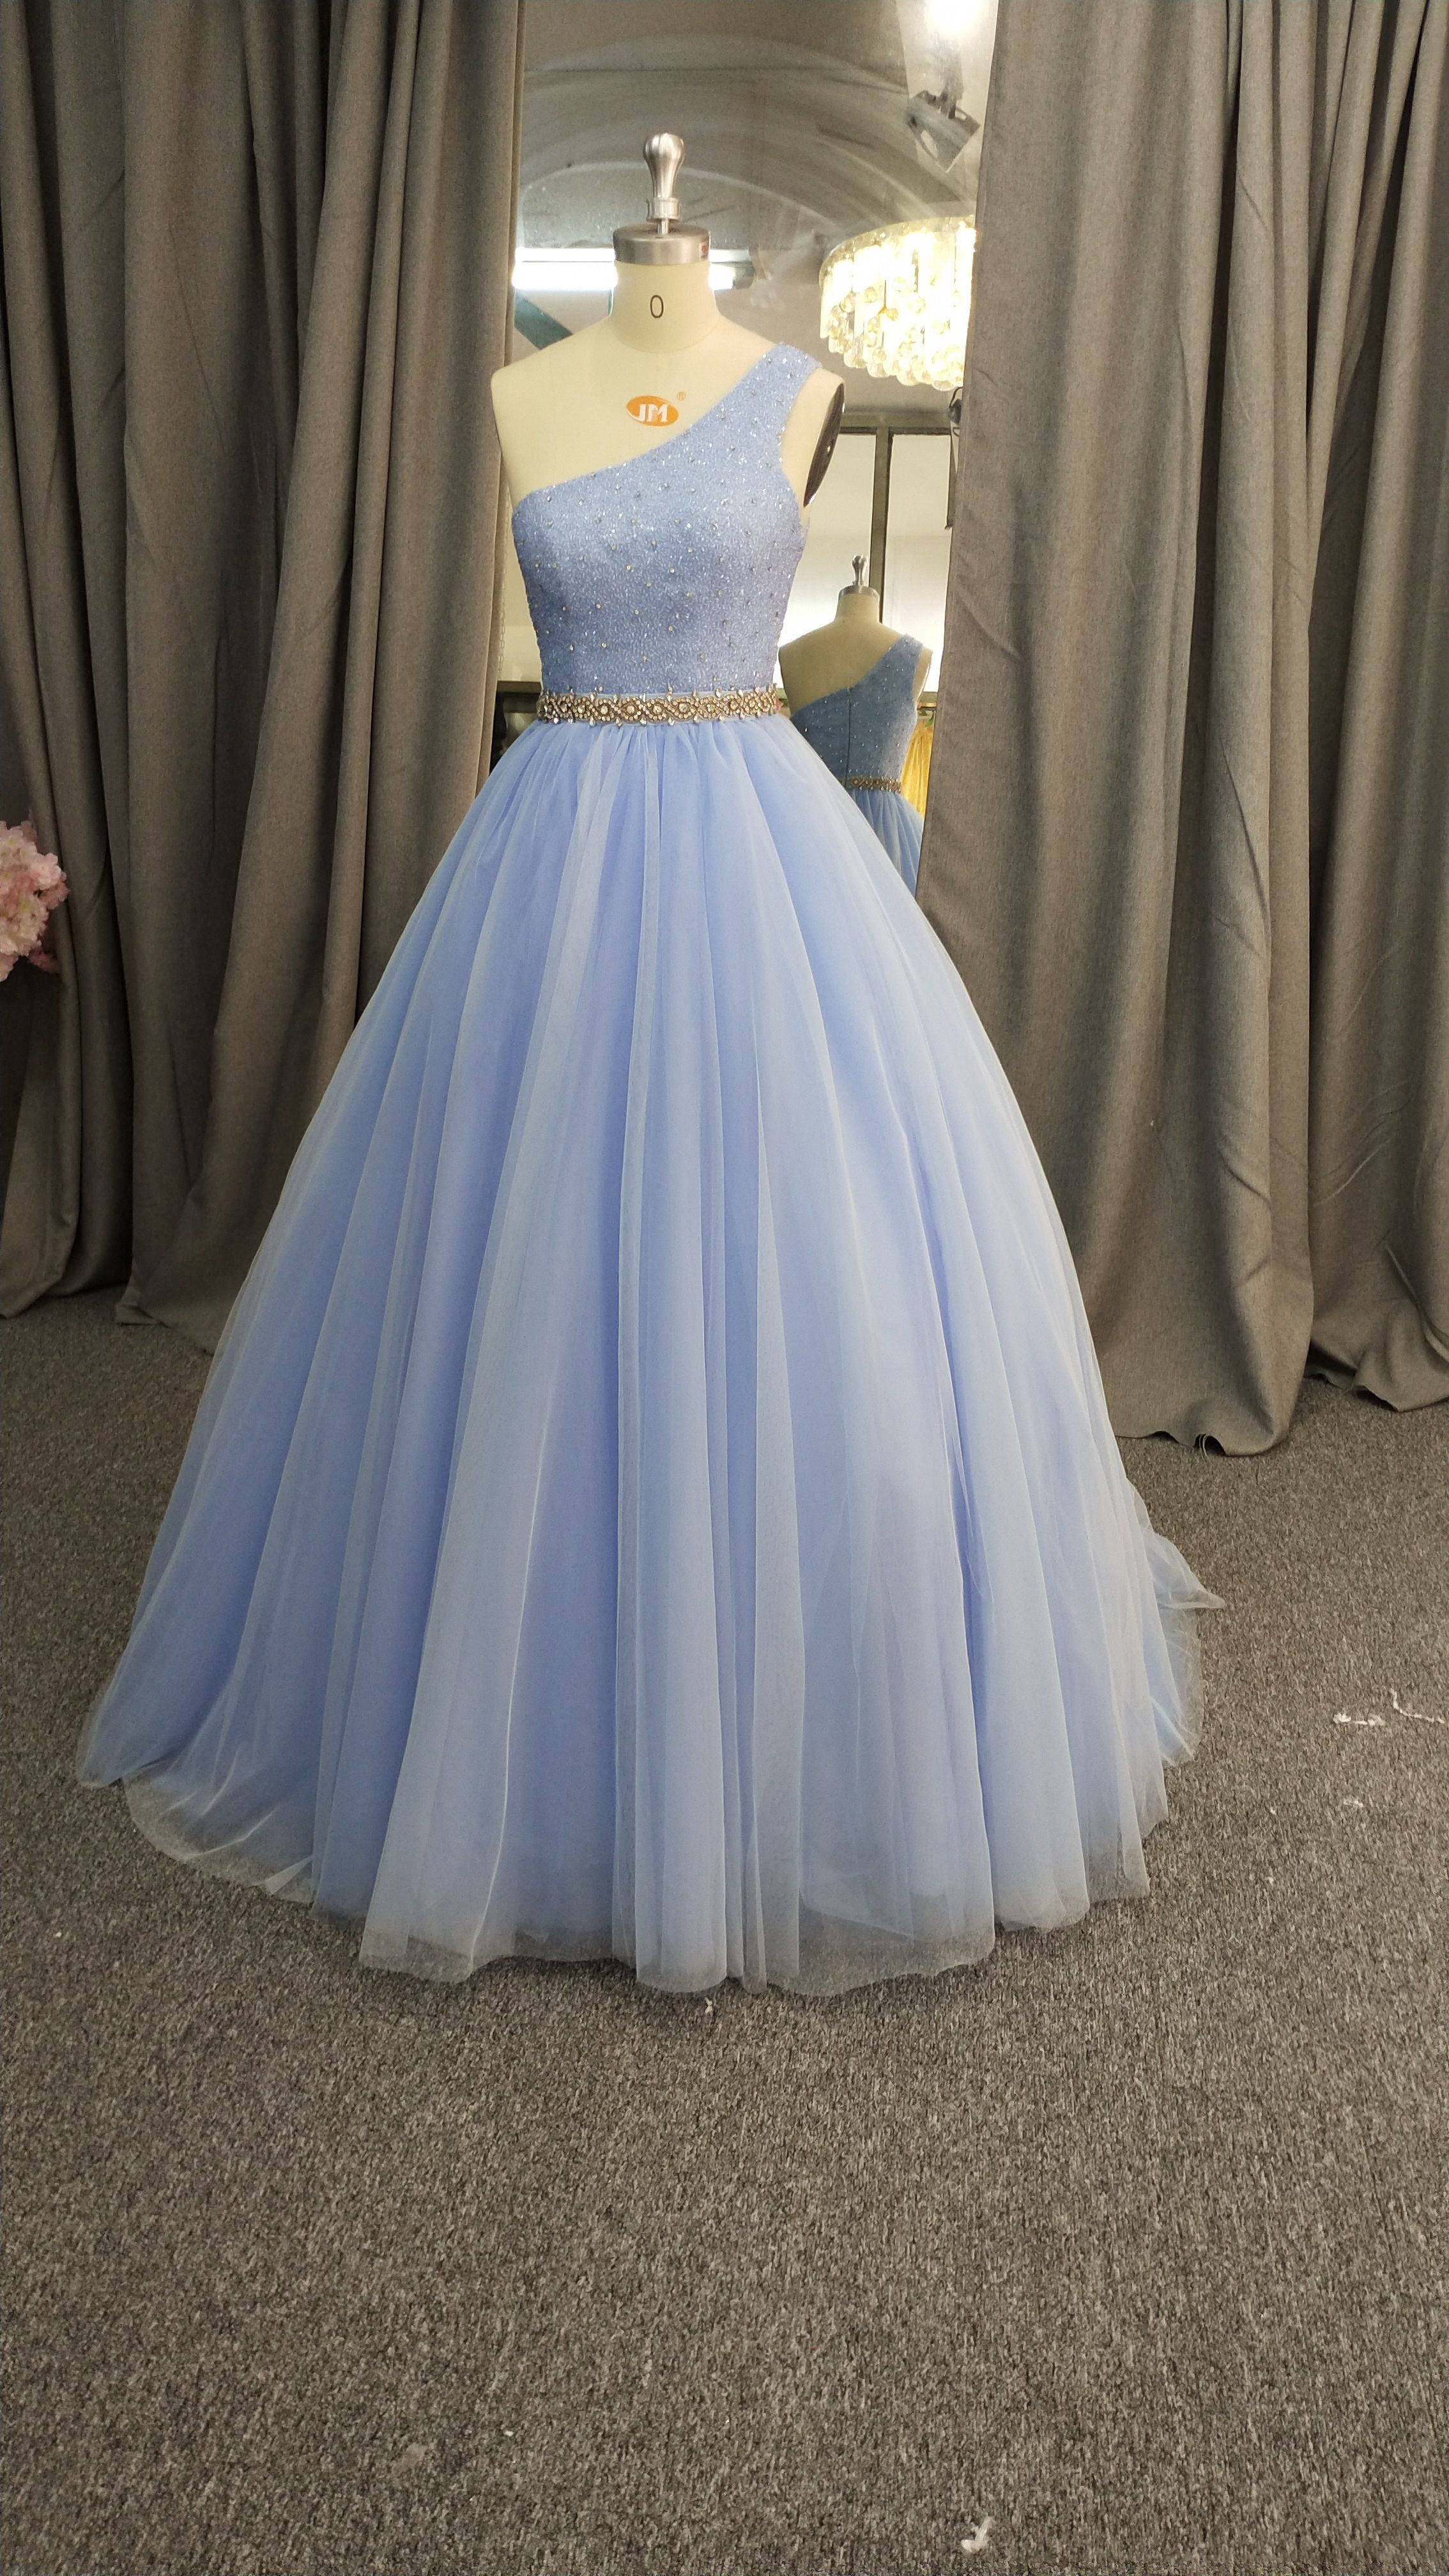 One Shoulder Blue Formal Evening Gown In 2021 Prom Dresses Ball Gown Formal Ball Gown Pastel Prom Dress [ 4032 x 2268 Pixel ]